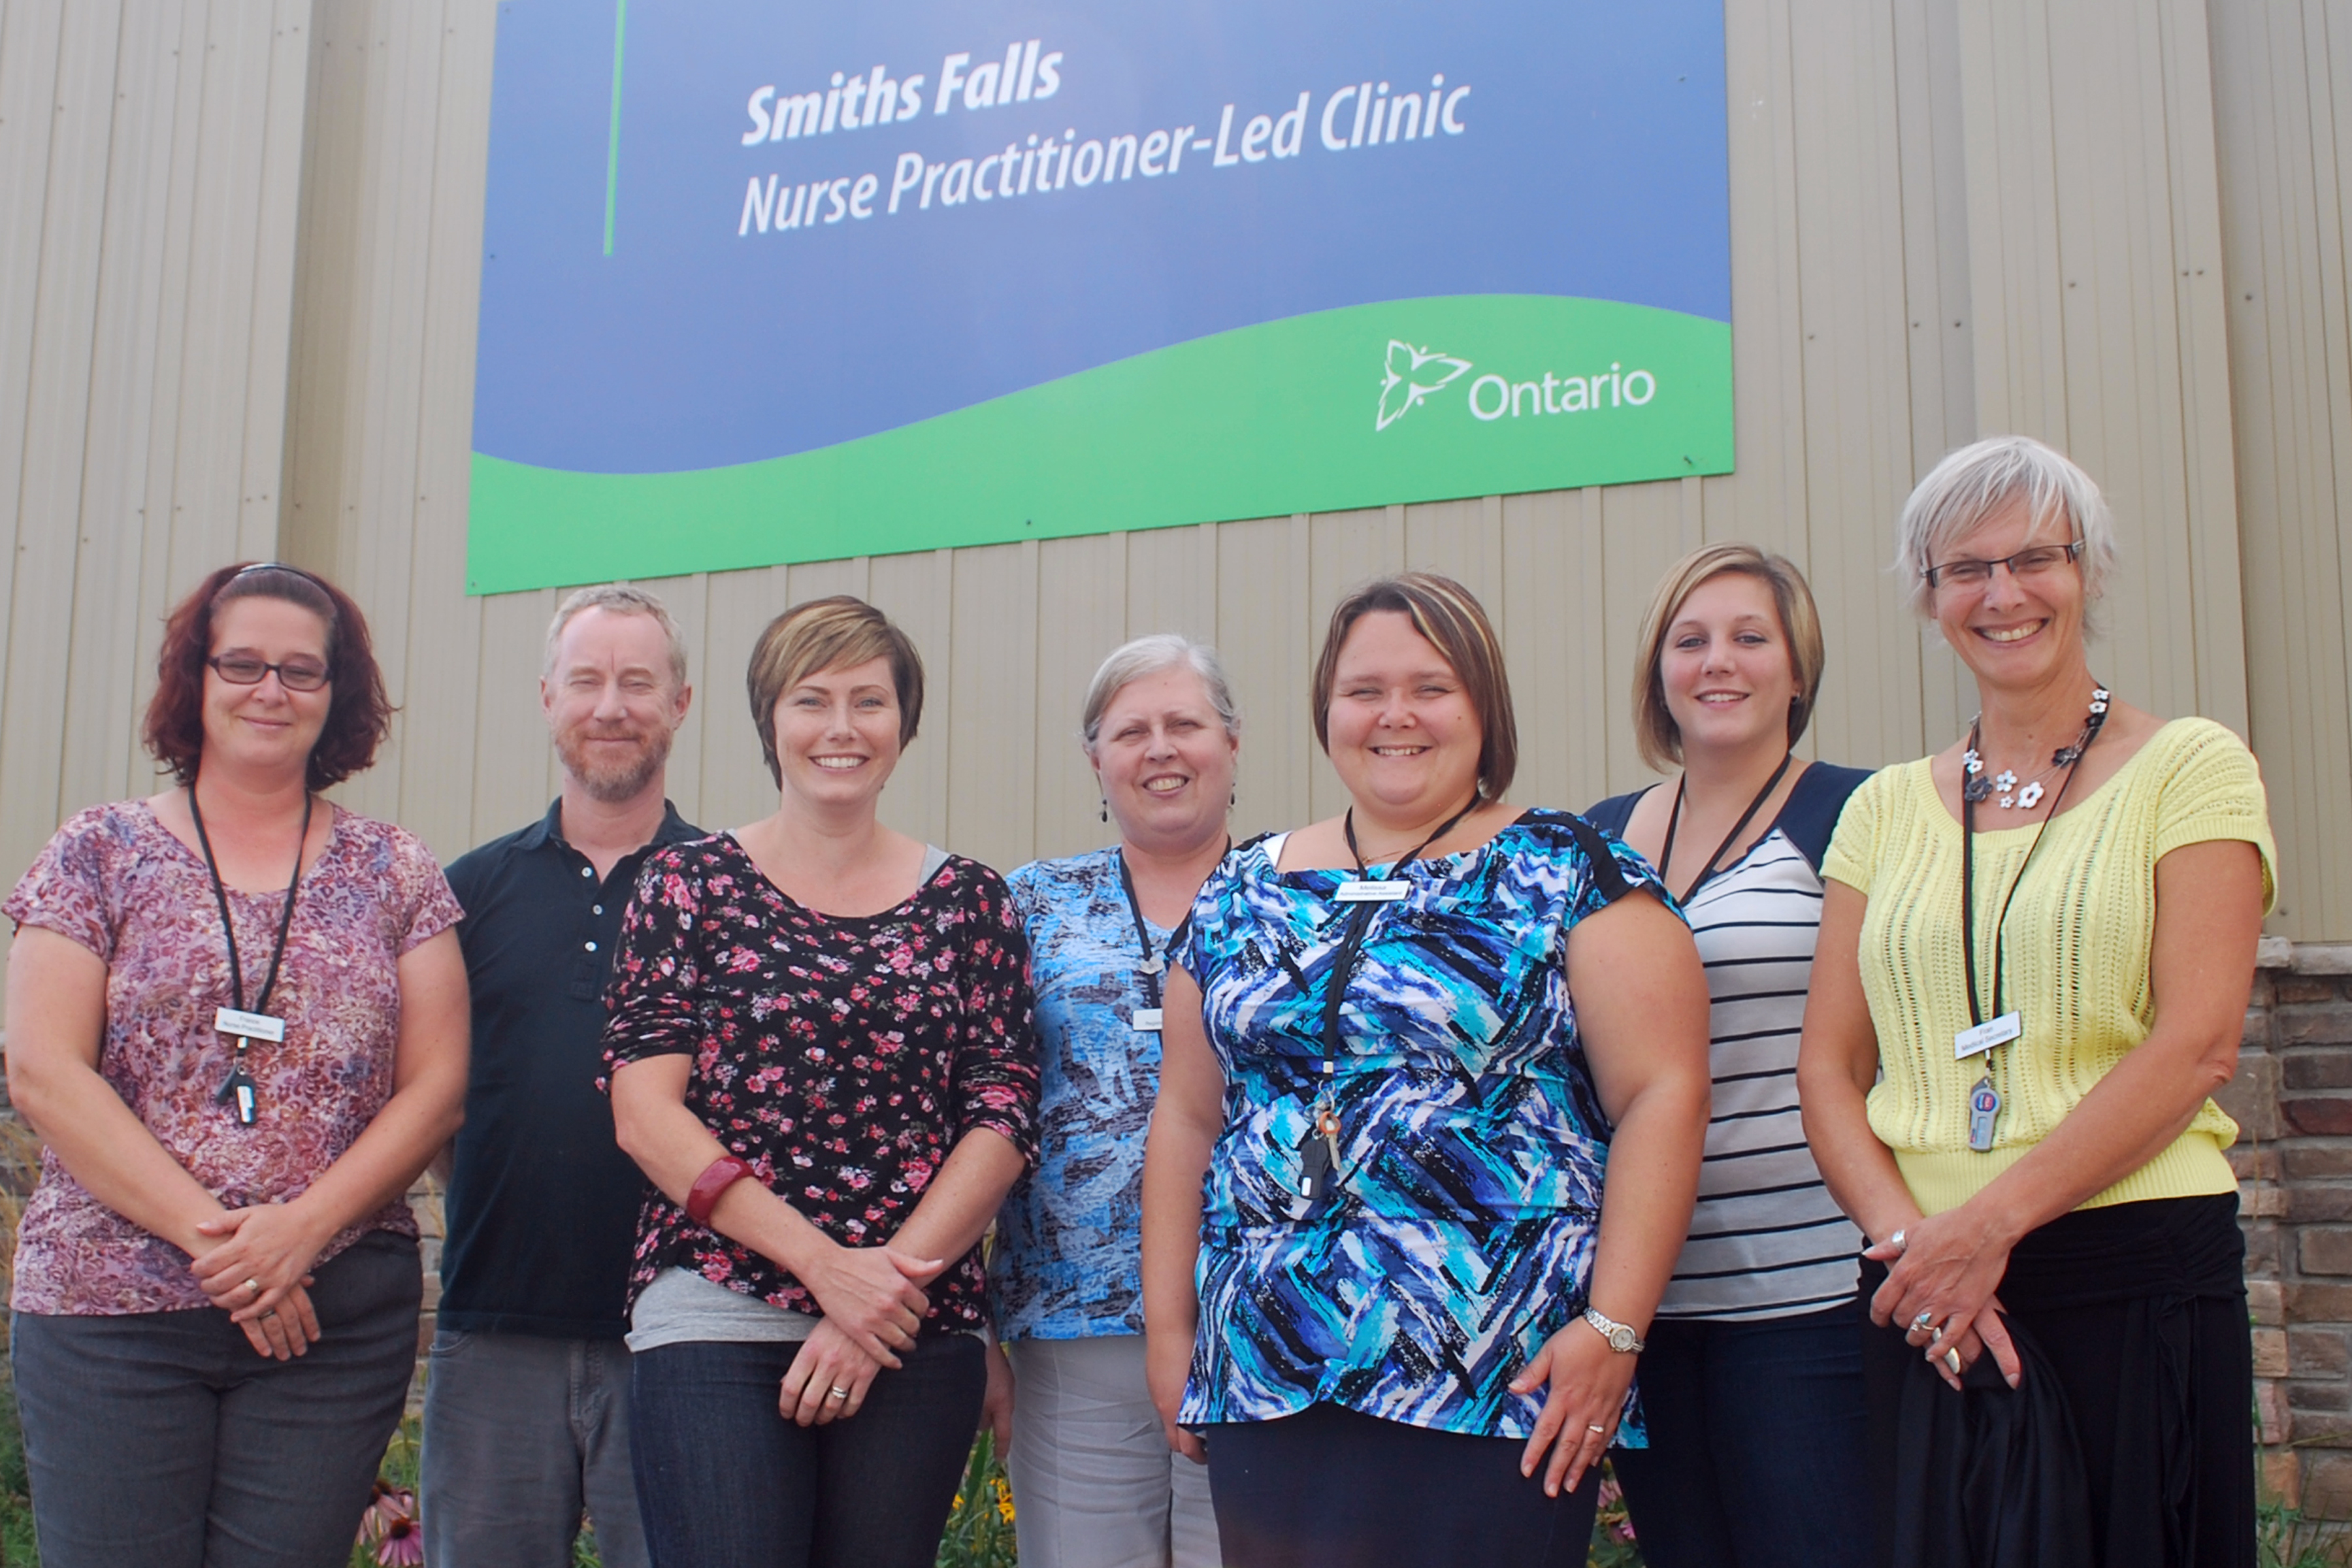 Staff from the Smiths Falls Nurse Practitioner-Led Clinic stepped out for a quick photo in front of their 52 Abbott St. location.  The clinic is currently taking on new patients in need of primary health care.  From left to right: Nurse Practitioner, France Murdoch; Interhealth Professional, Simon Wright; Administrative Lead, Leeann Brennan; Registered Nurse, Pat Saunders; Administration Assistant, Melissa LaSalle; and Reception and Medical Secretaries, Sarah Mann and Fran Buttner.